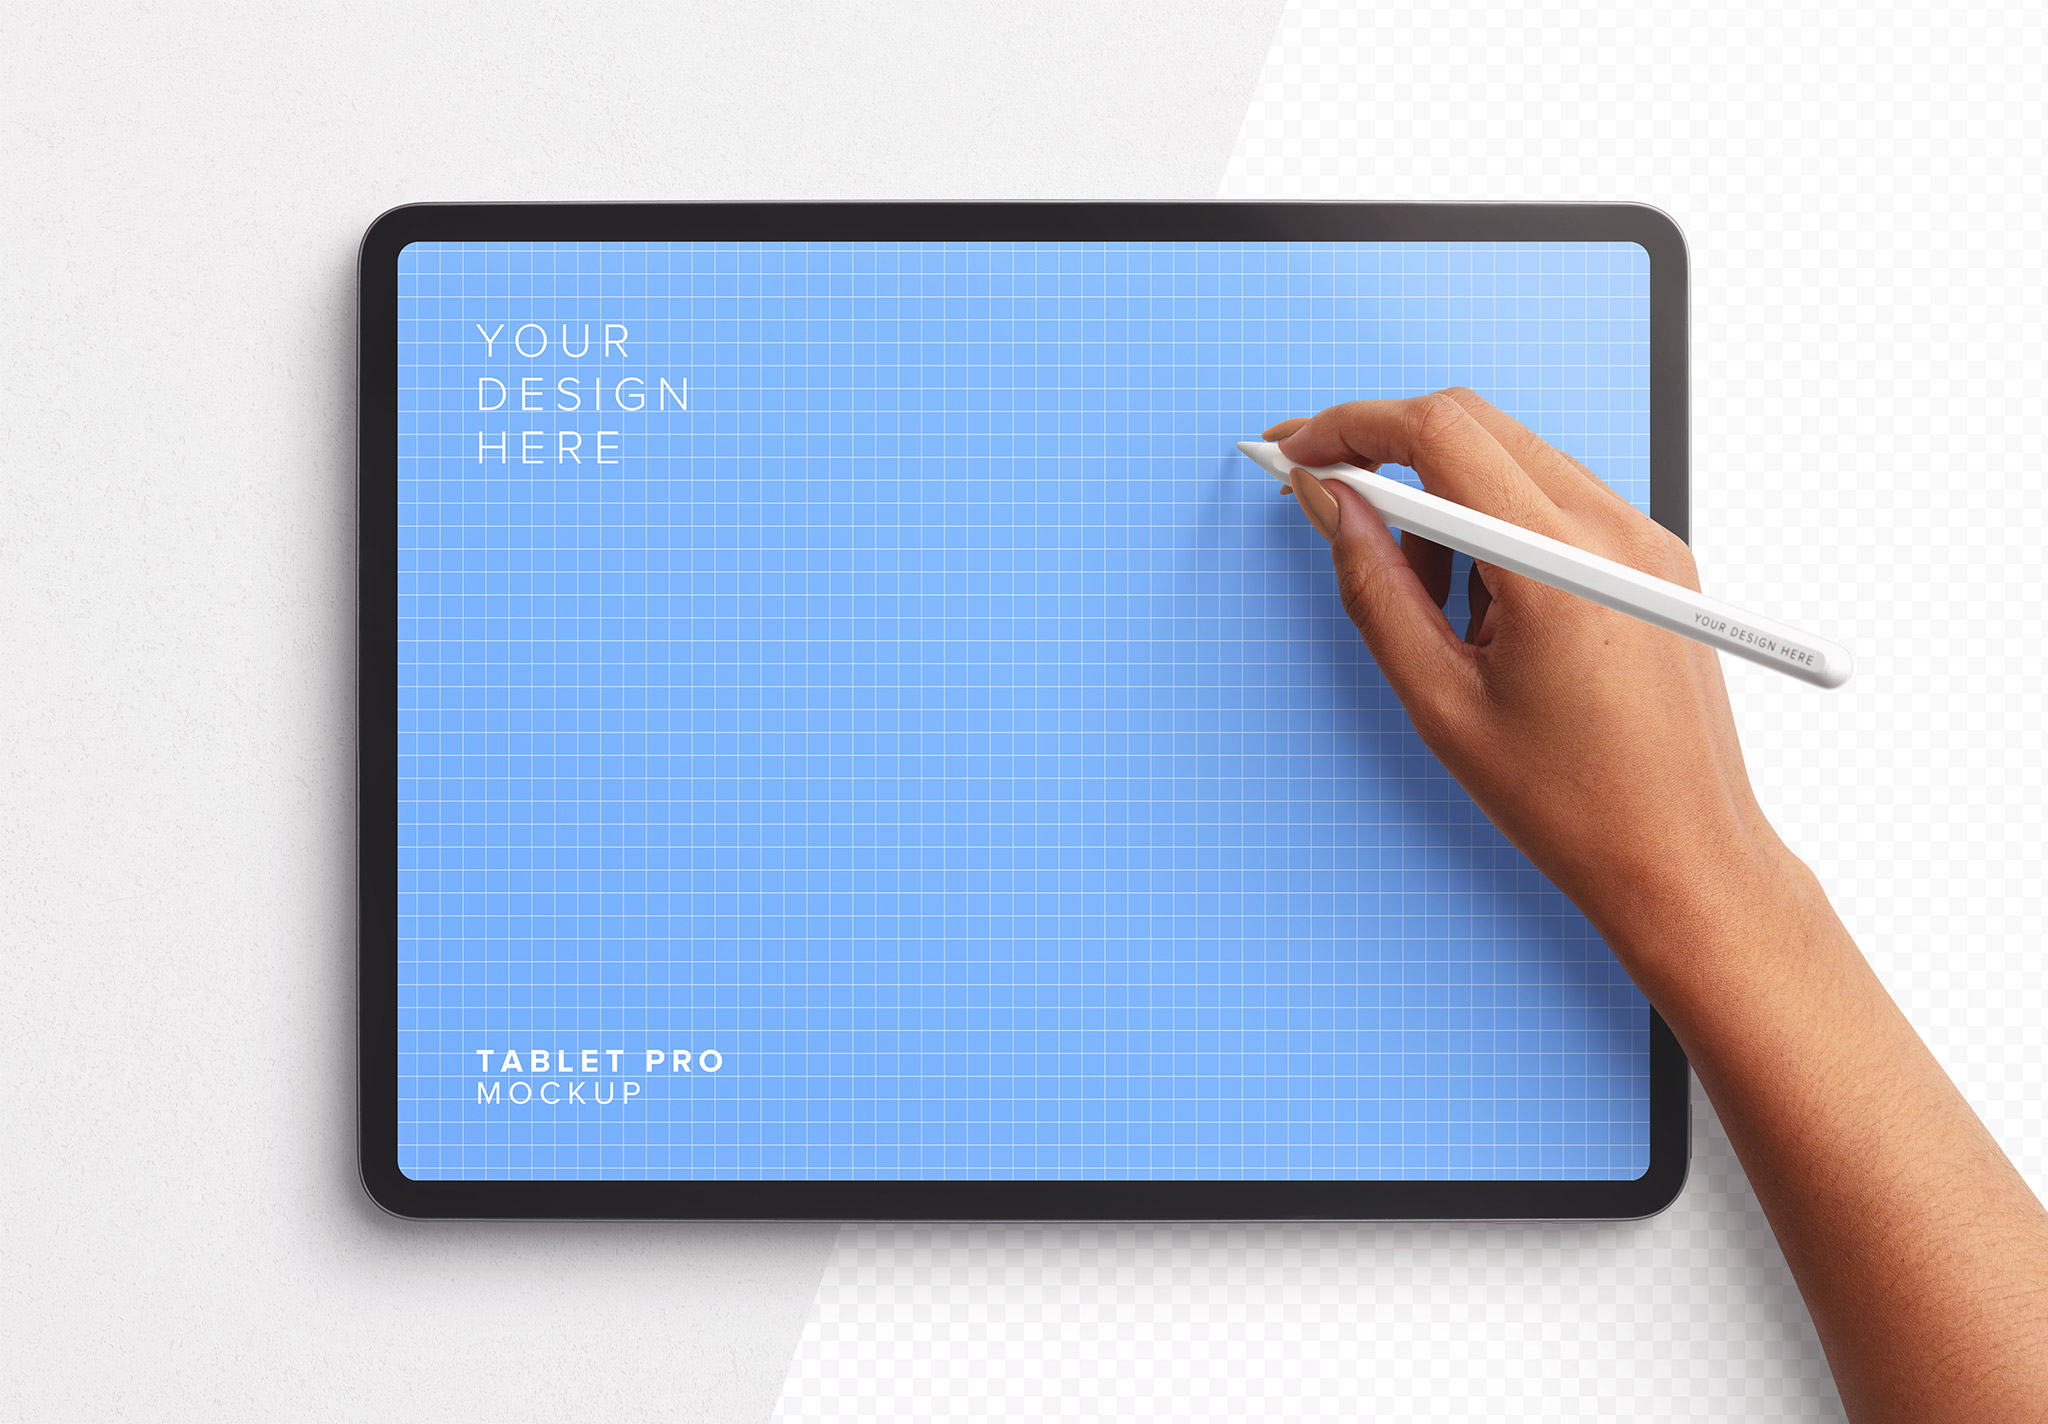 Tablet Pro Mockup with Hand Holding Pencil Image01